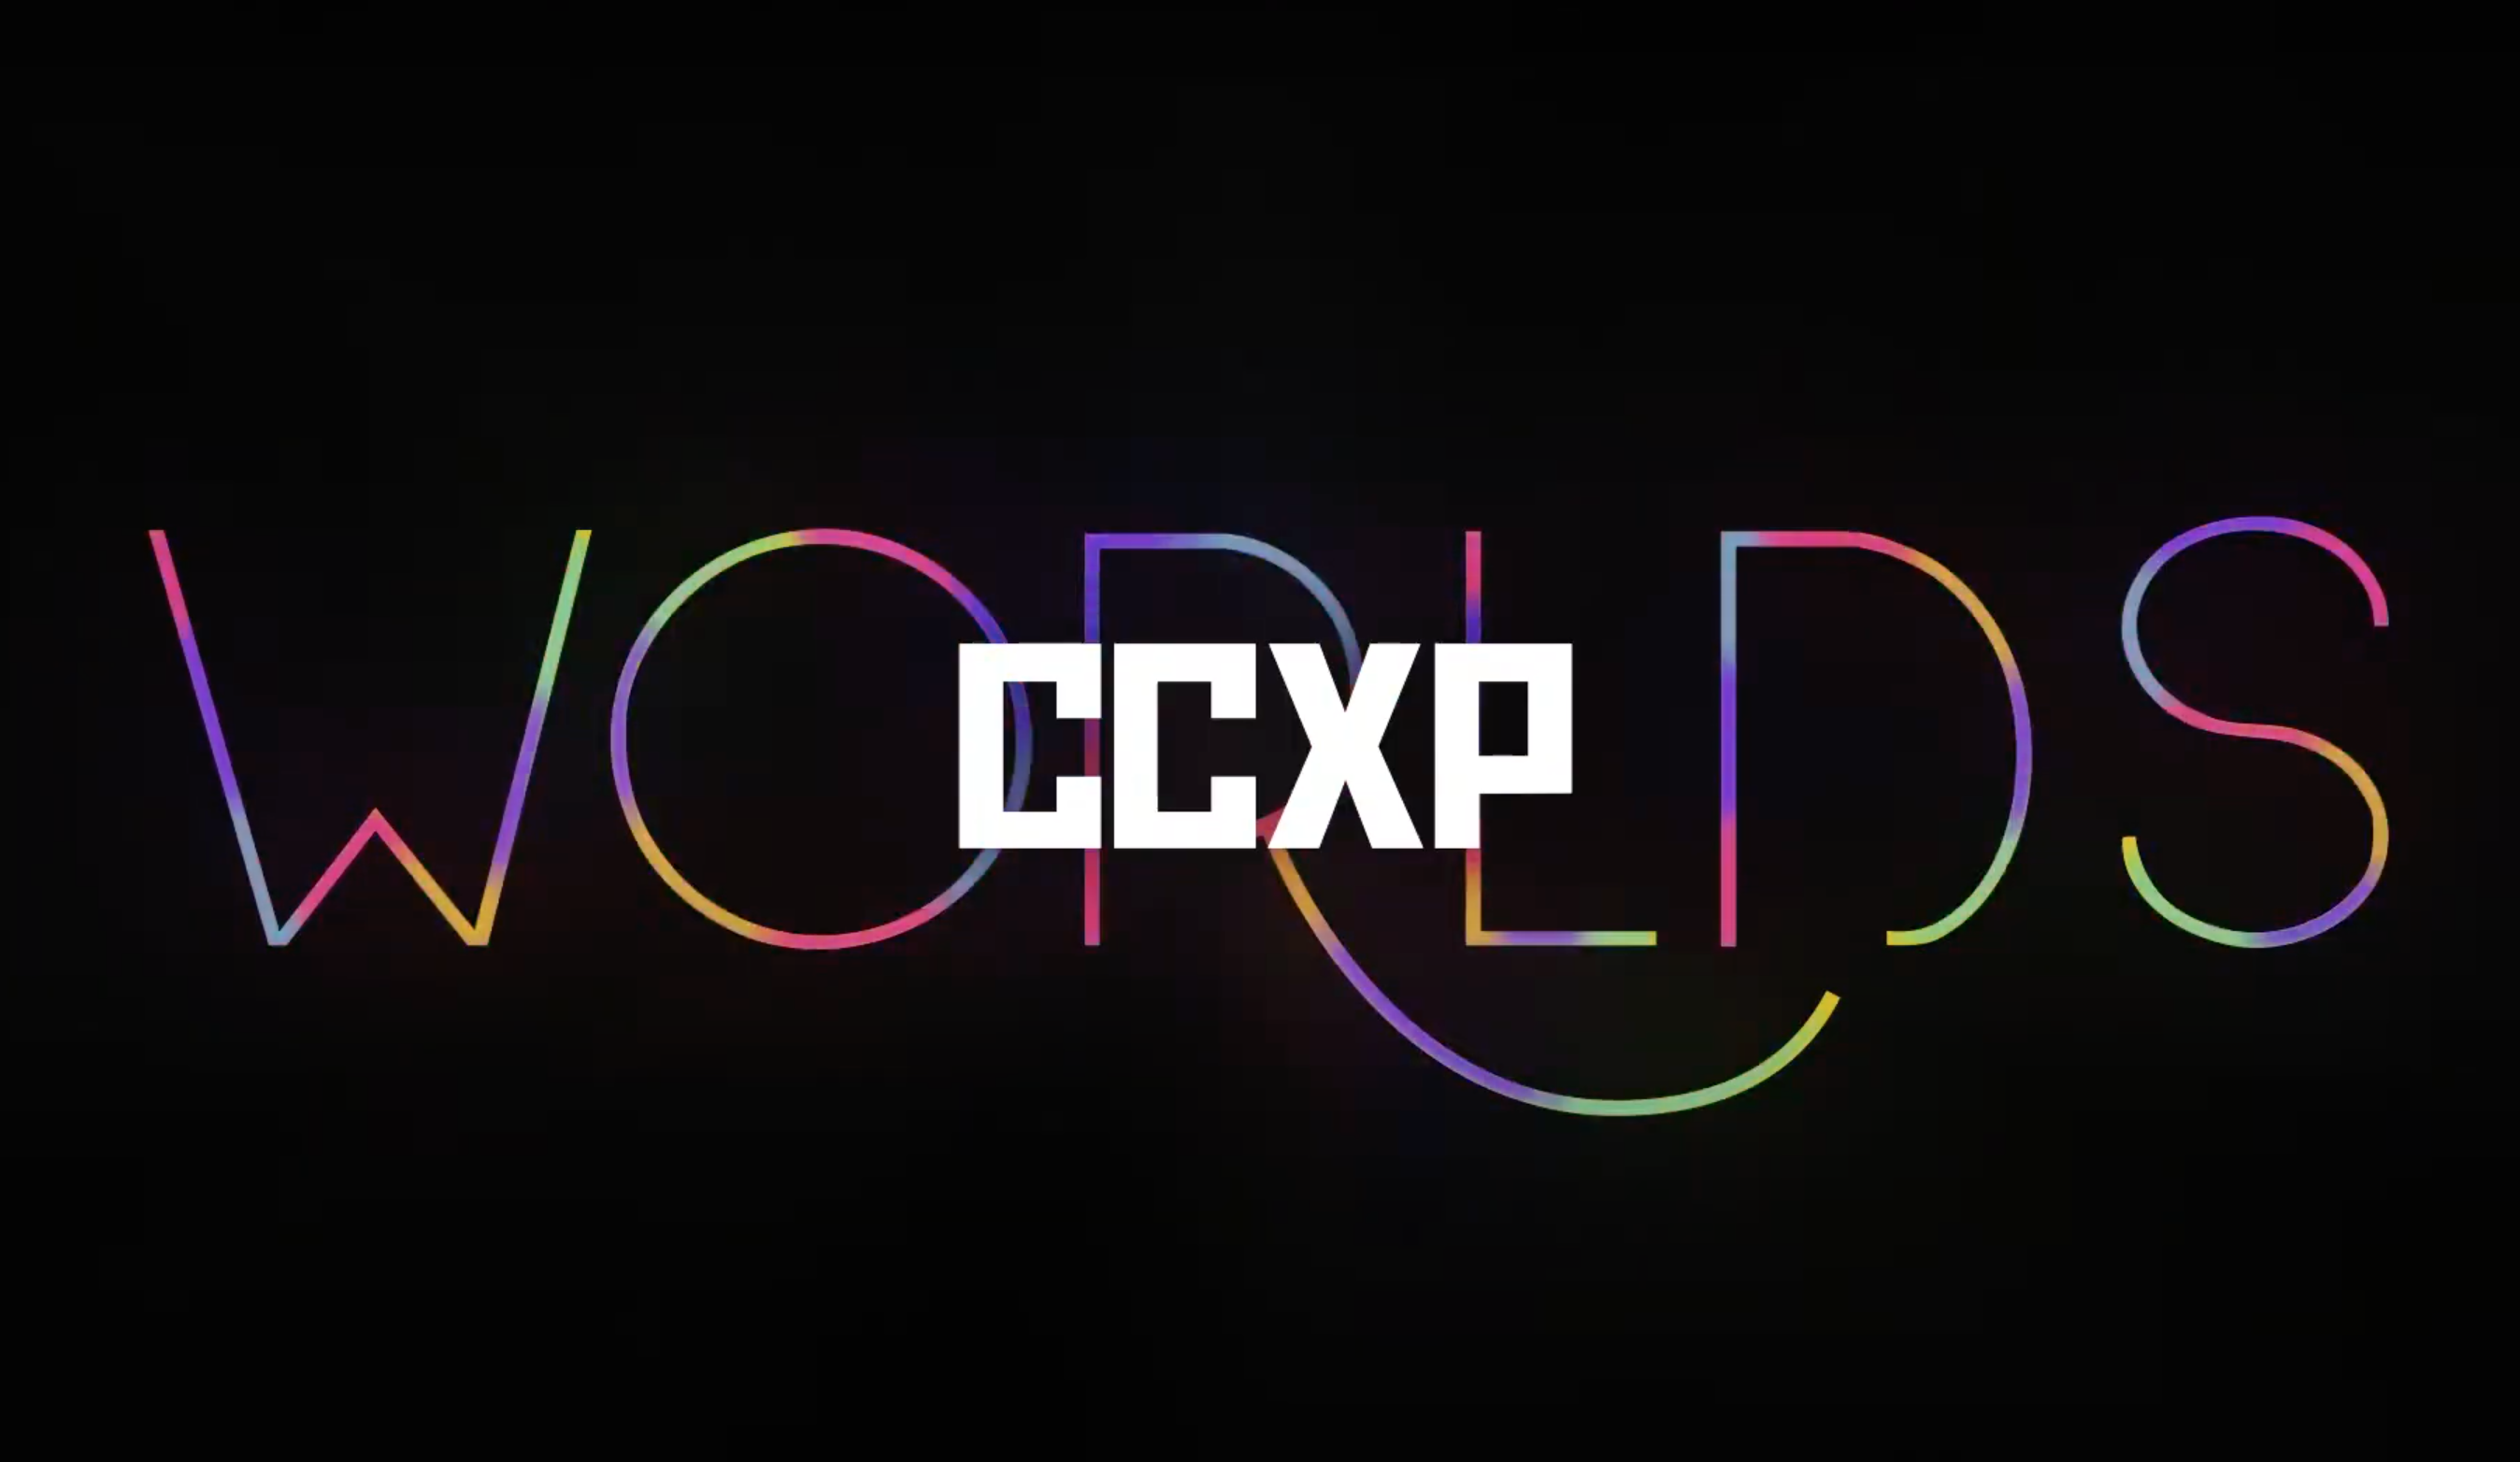 AMC confirma elenco de 'The Walking Dead: World Beyond' em painel exclusivo na CCXP Worlds